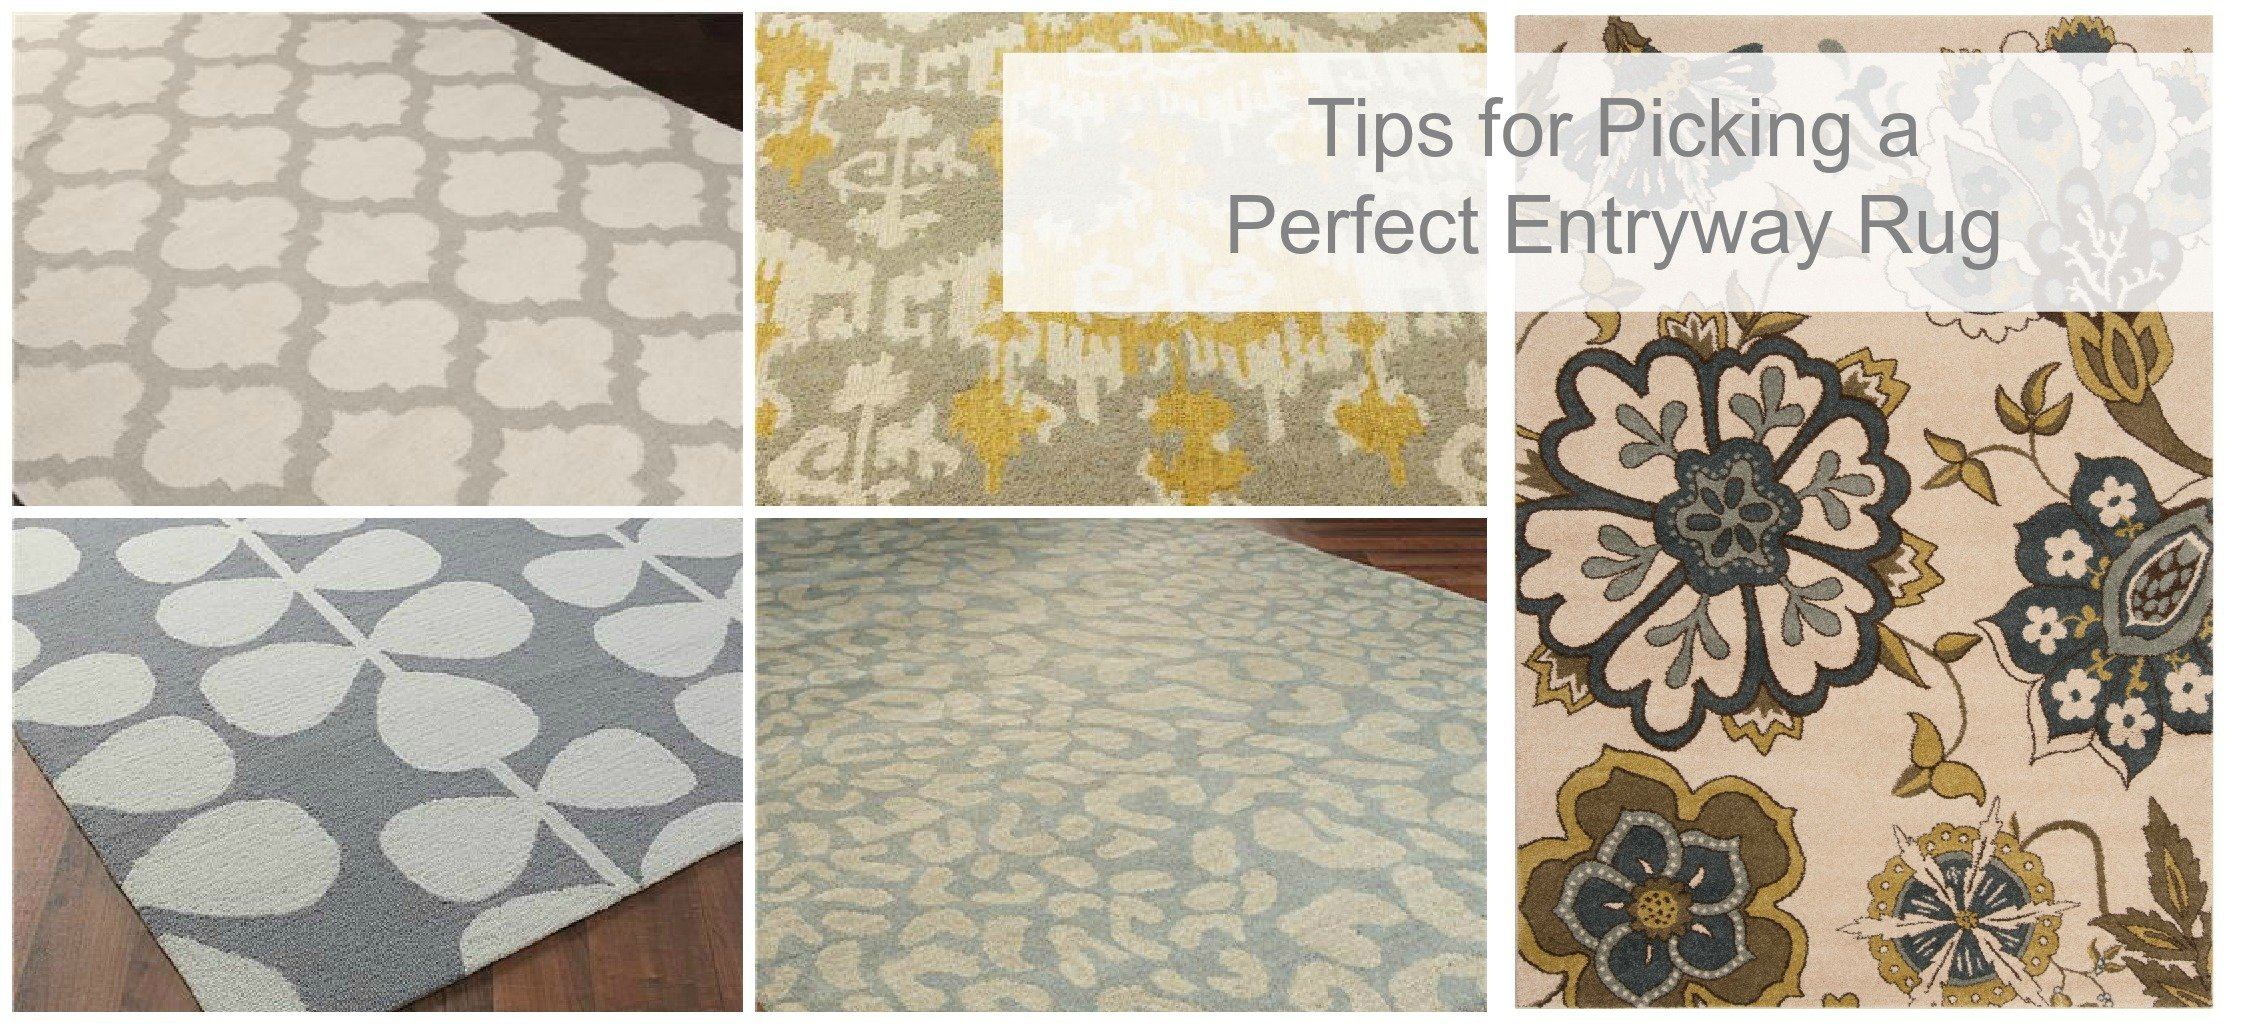 How to pick the perfect entryway rug tauni co for Choosing a rug color